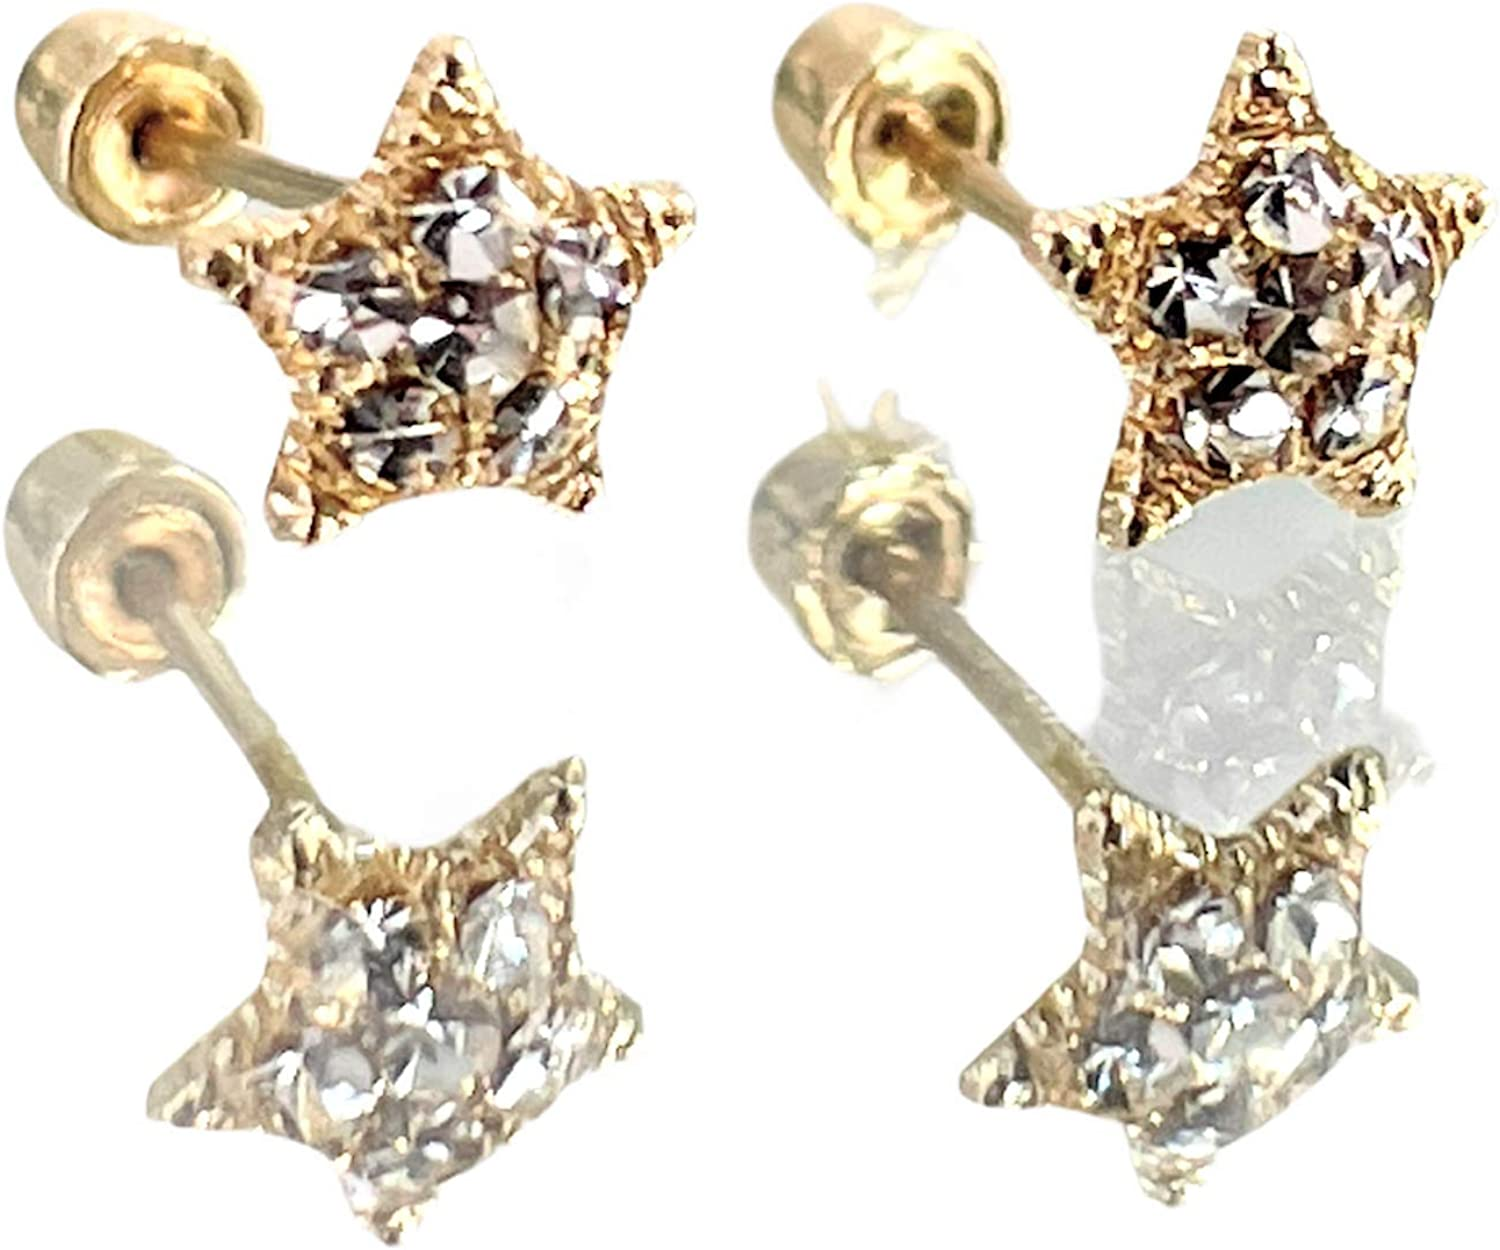 Buckler 2007 Minis Super-cheap Stars With Gold 10 Popular products Stones Karat